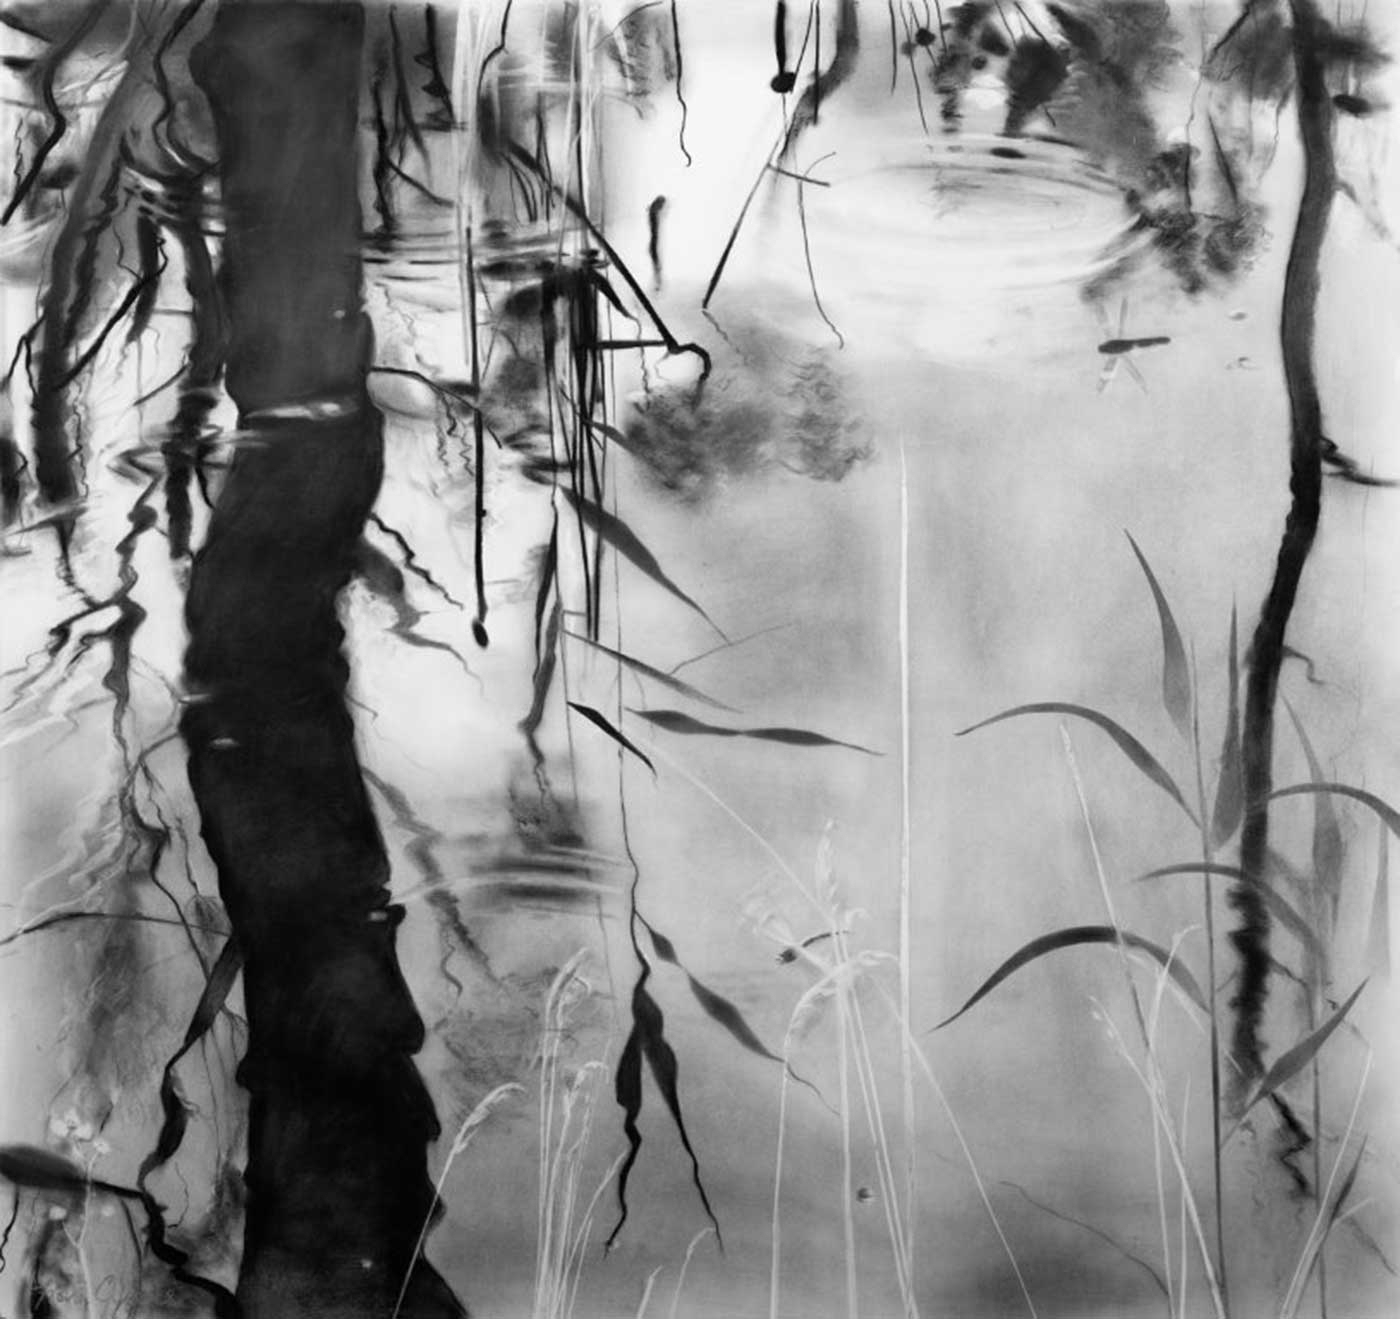 Water life, Foulshaw Moss, charcoal on paper